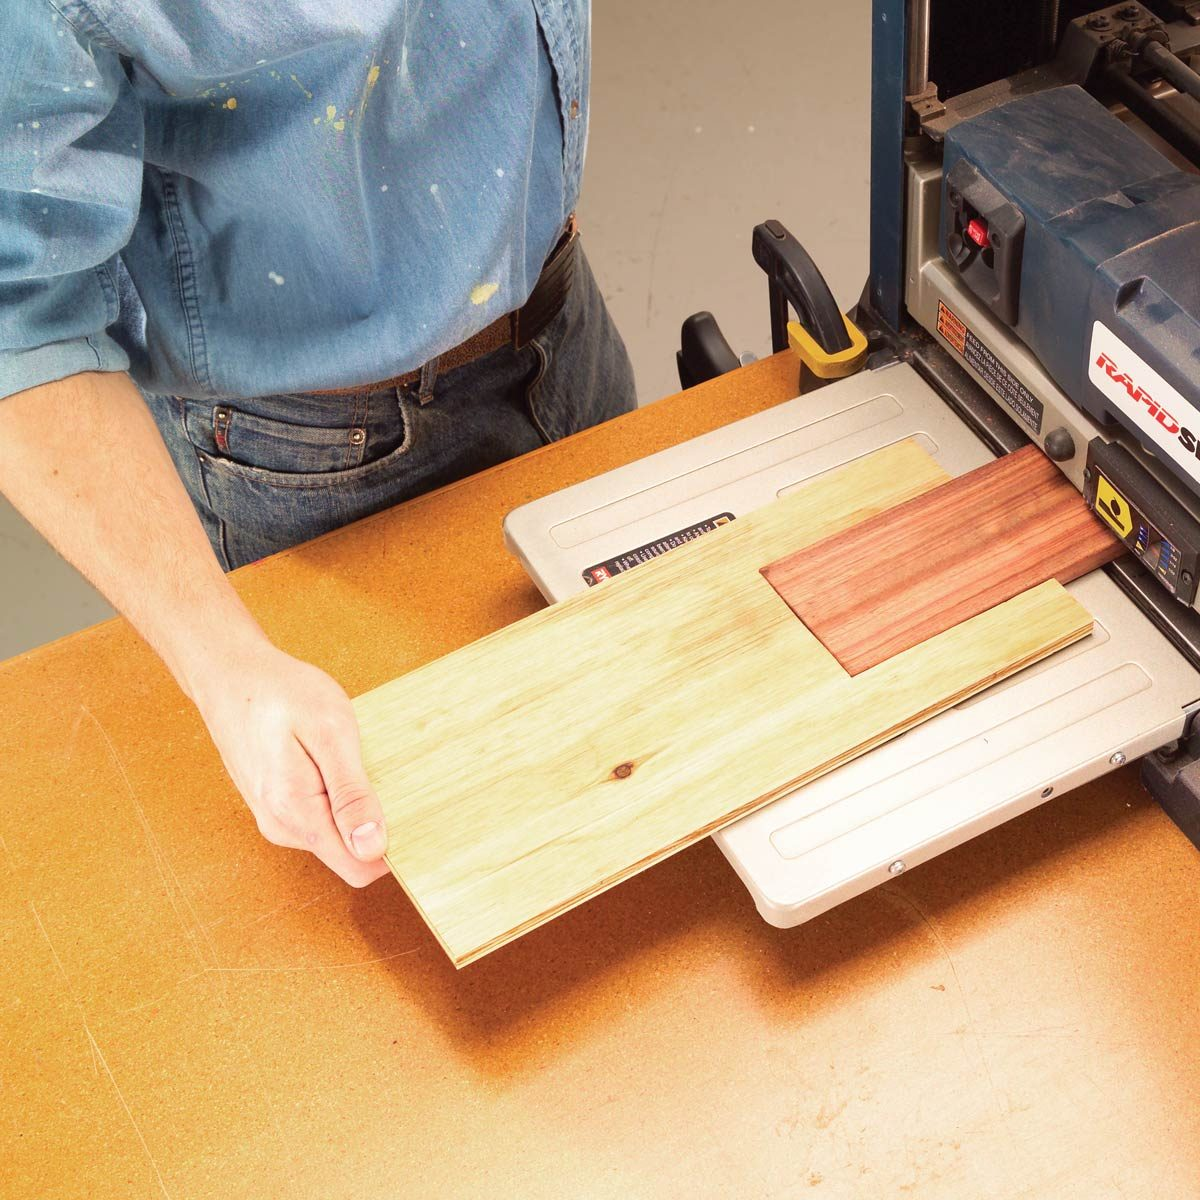 farewell, planer snipe — workshop tip from the family handyman